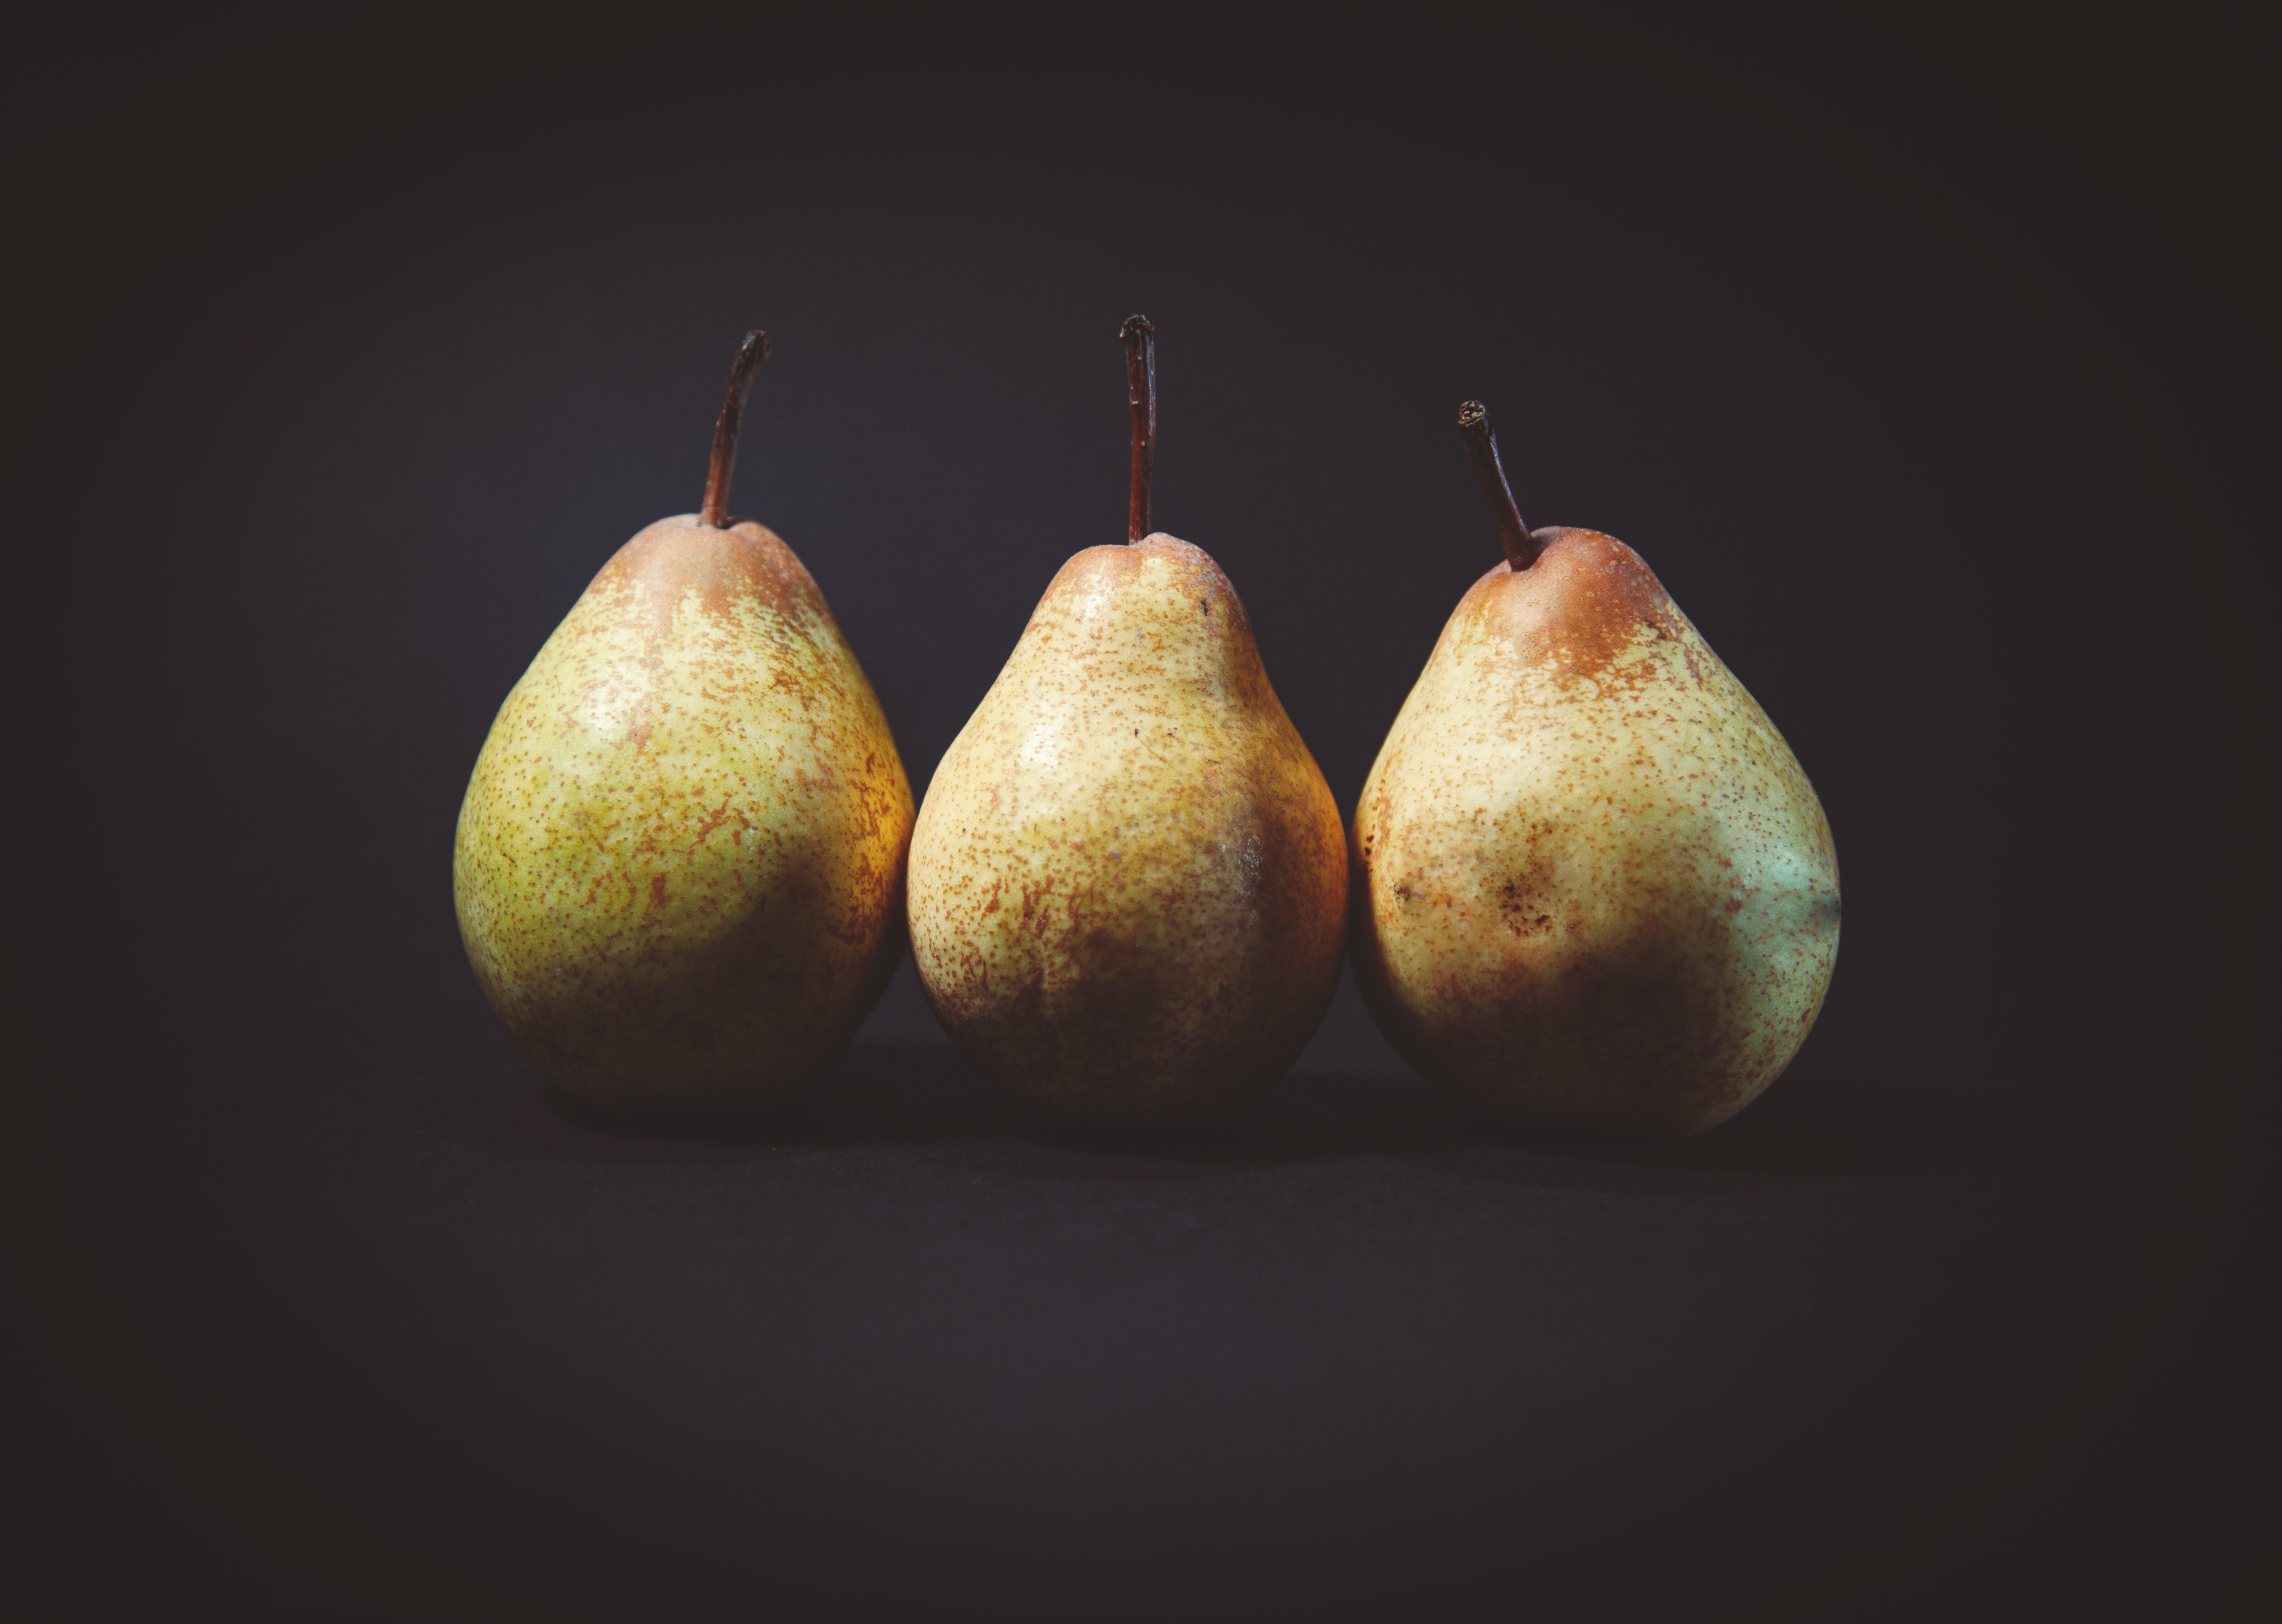 Three pears in a row against a black background